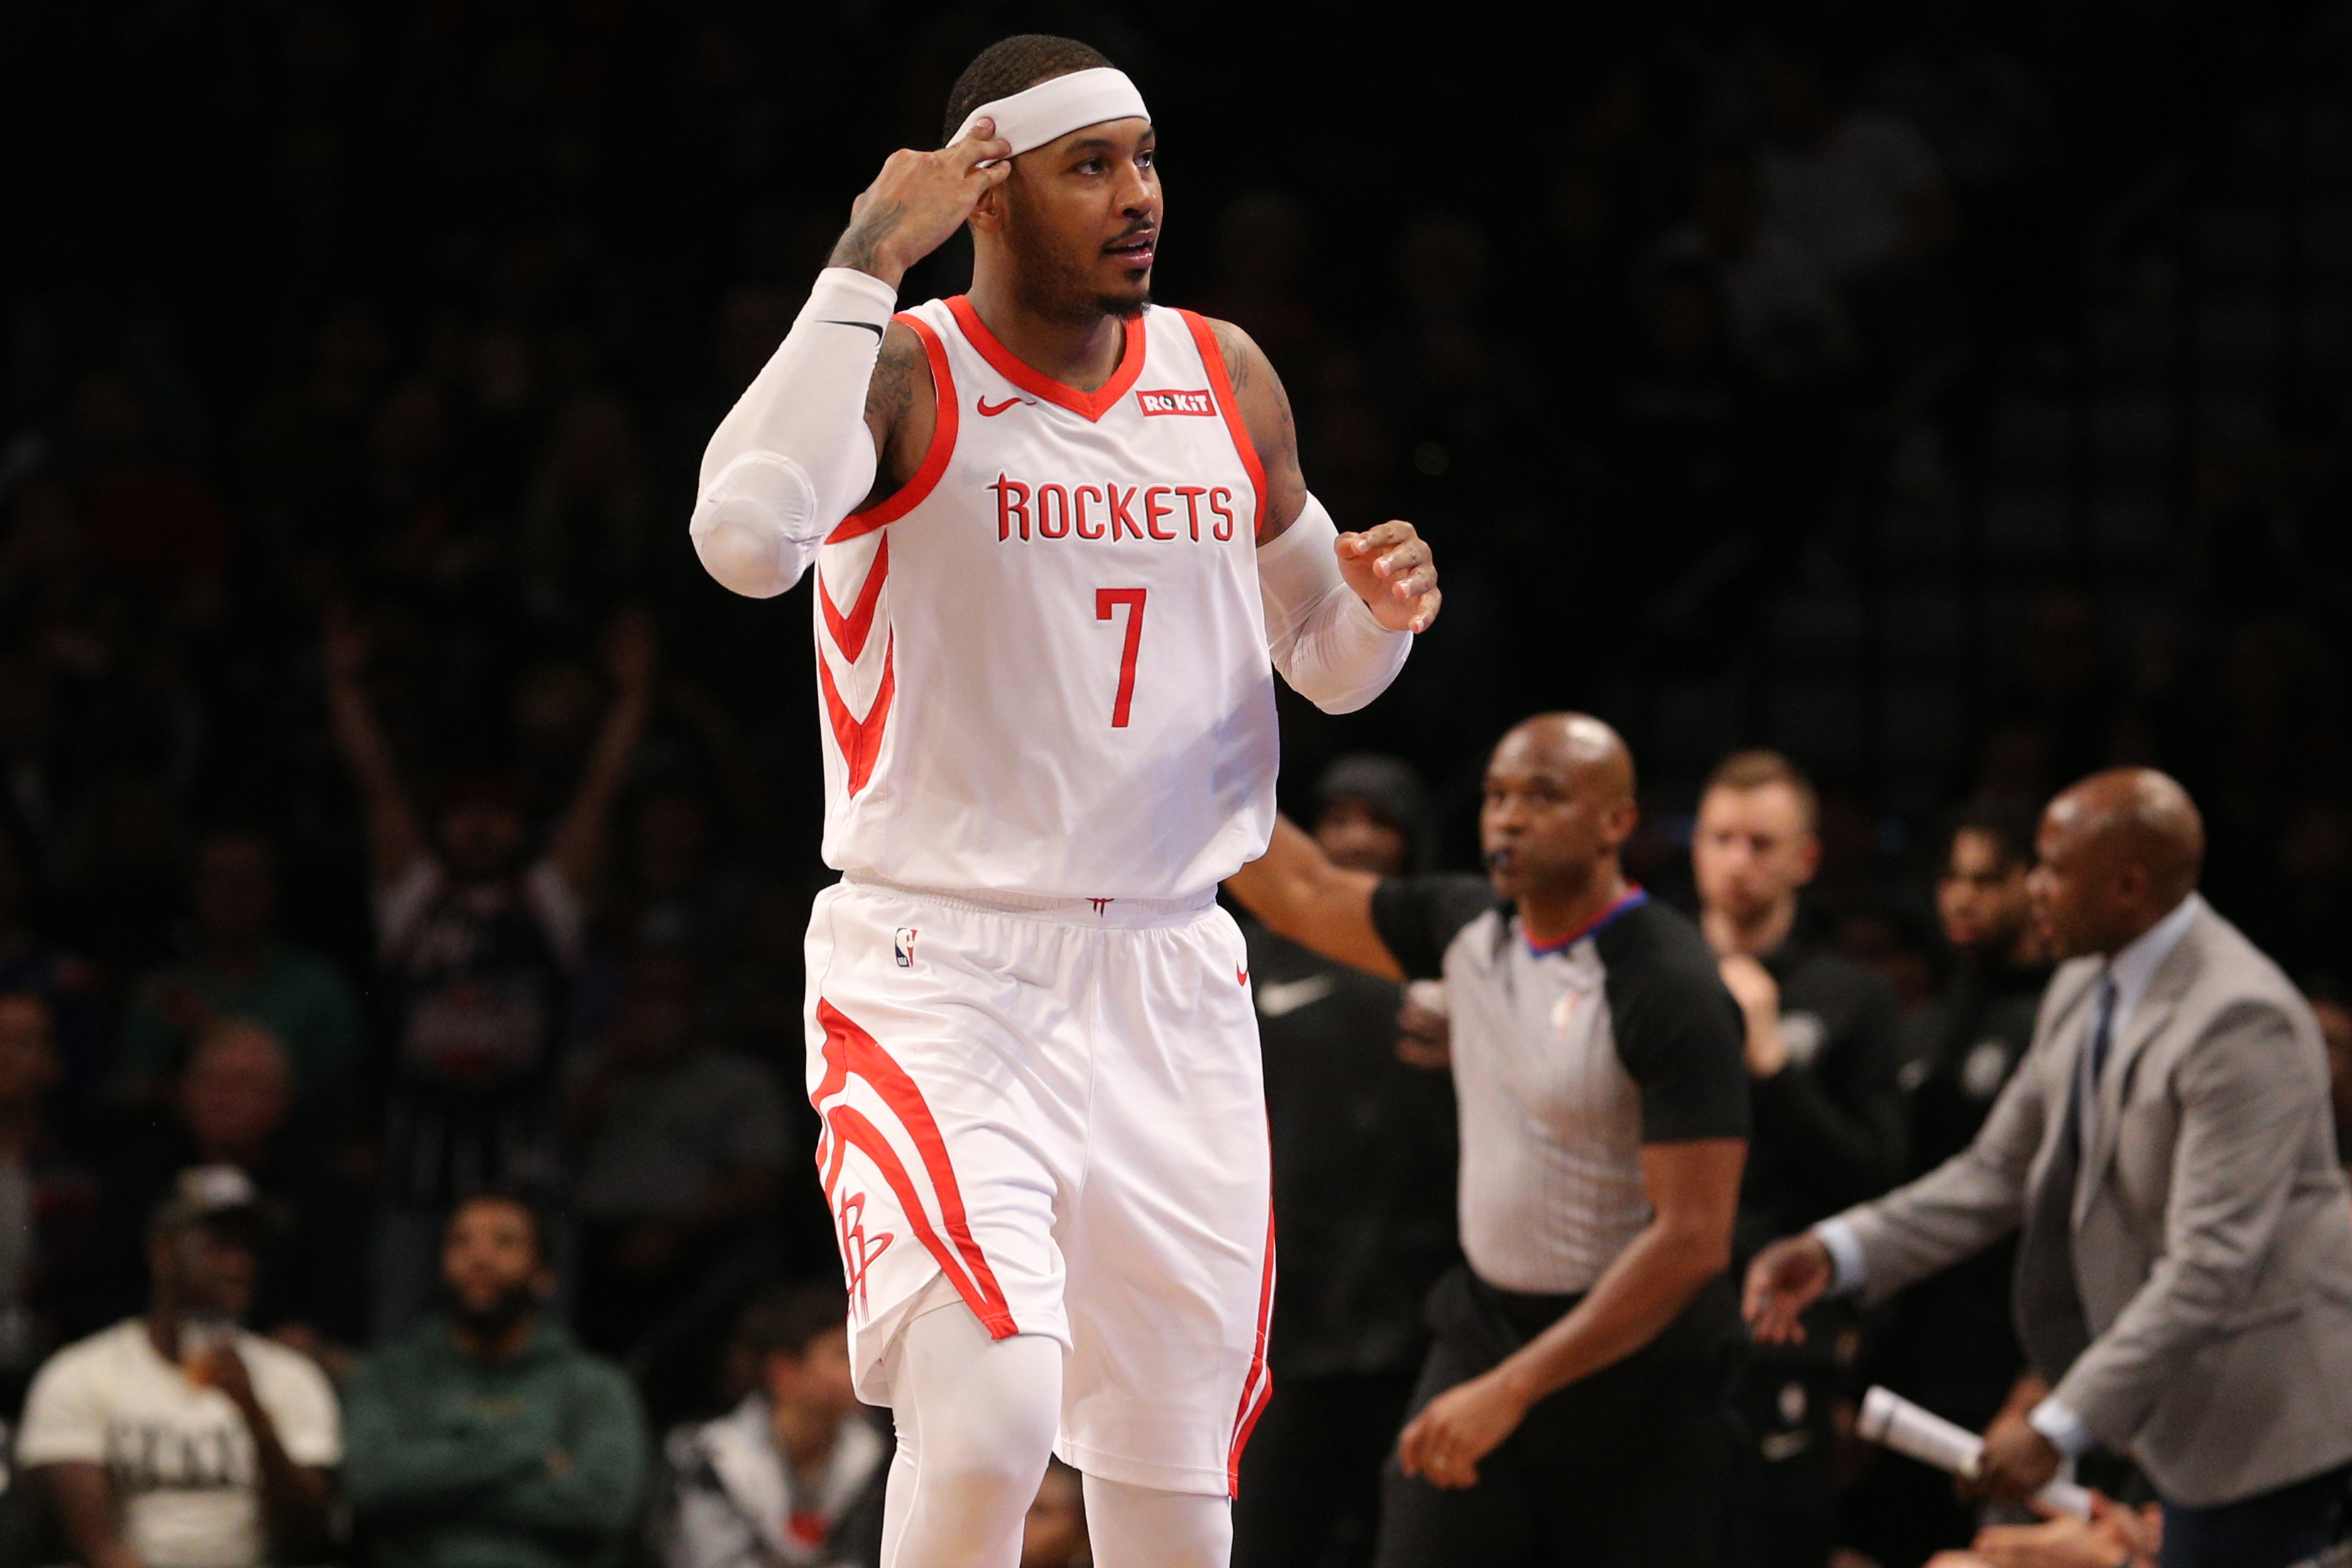 Carmelo Anthony's brief Rockets tenure is over after a money-saving trade to the Bulls